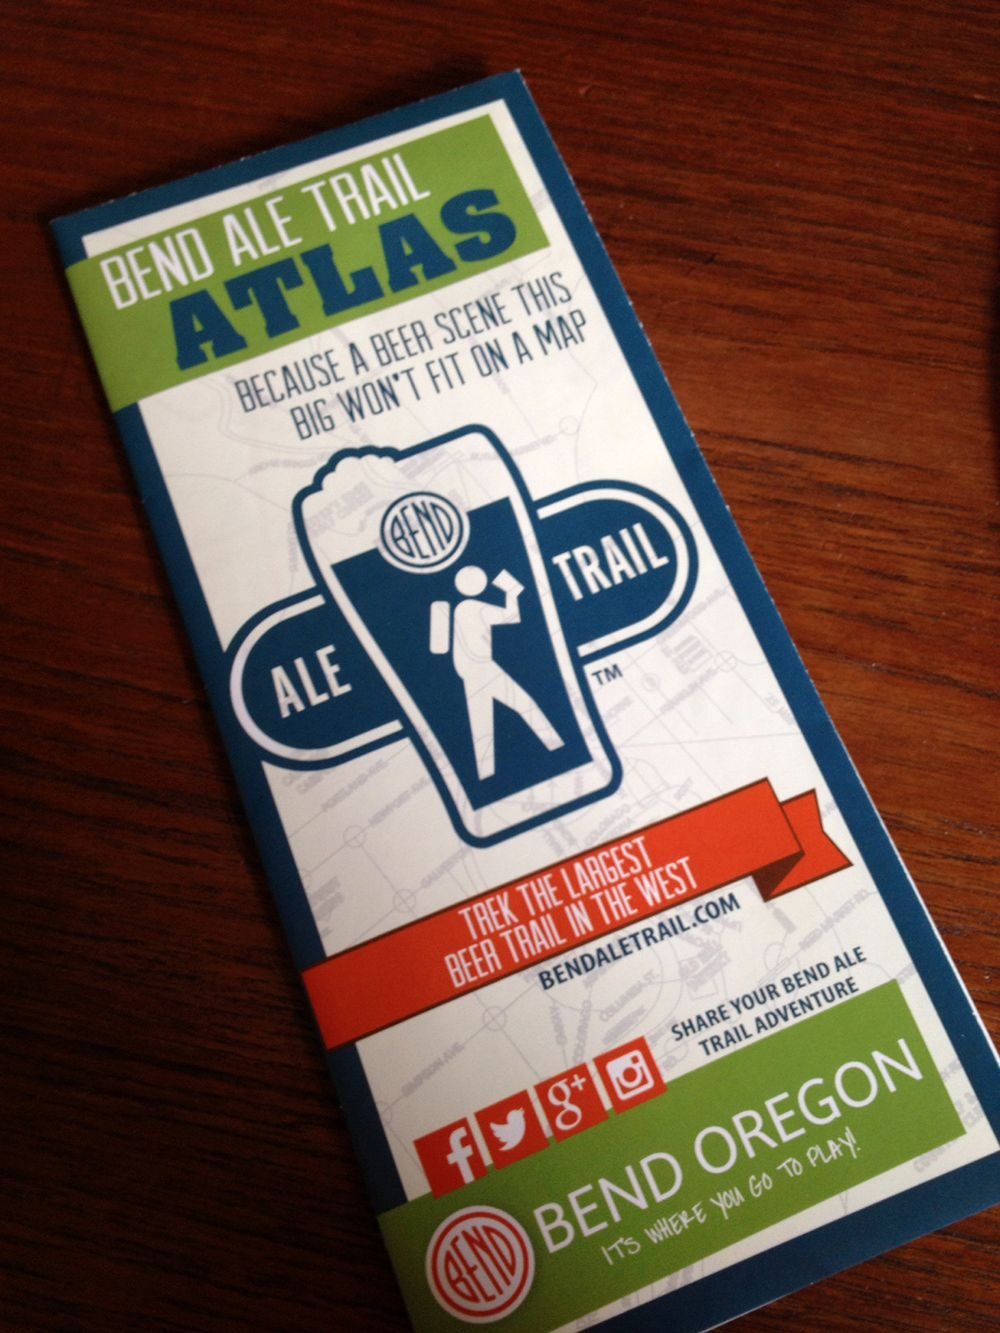 Map Of Oregon Breweries%0A The Bend Ale Trail map has a new cover to match the new look and feel